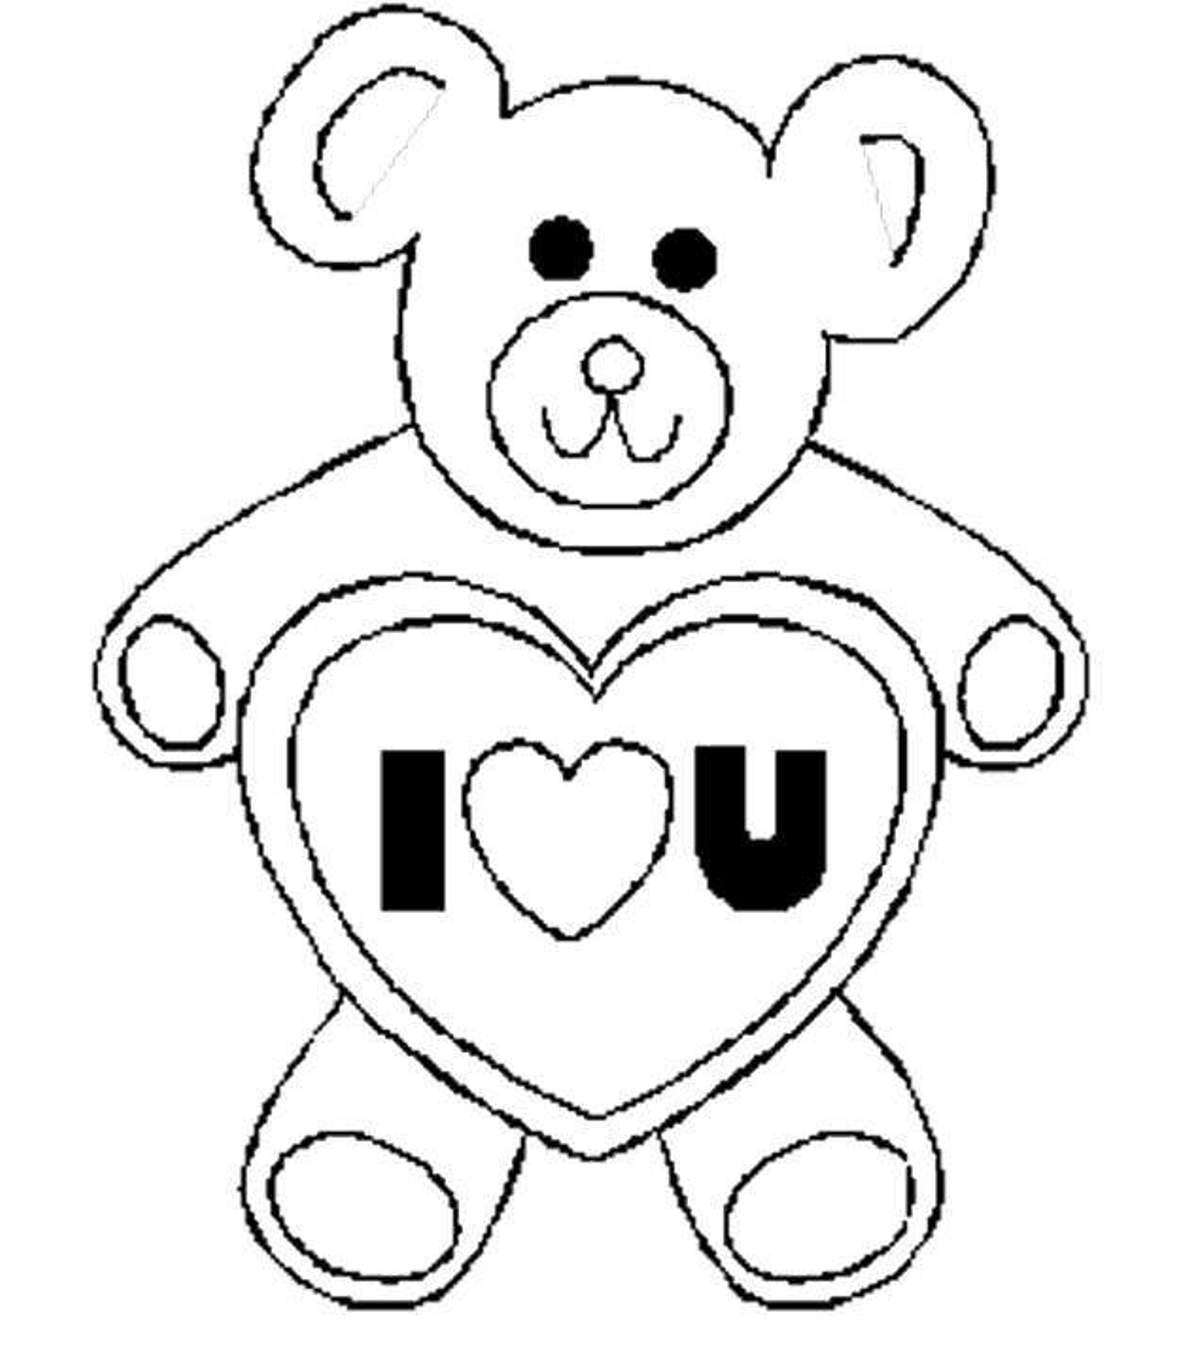 Love Bird Coloring Pages Valentines Day Coloring Pages Bear I Love U Valentine Coloring